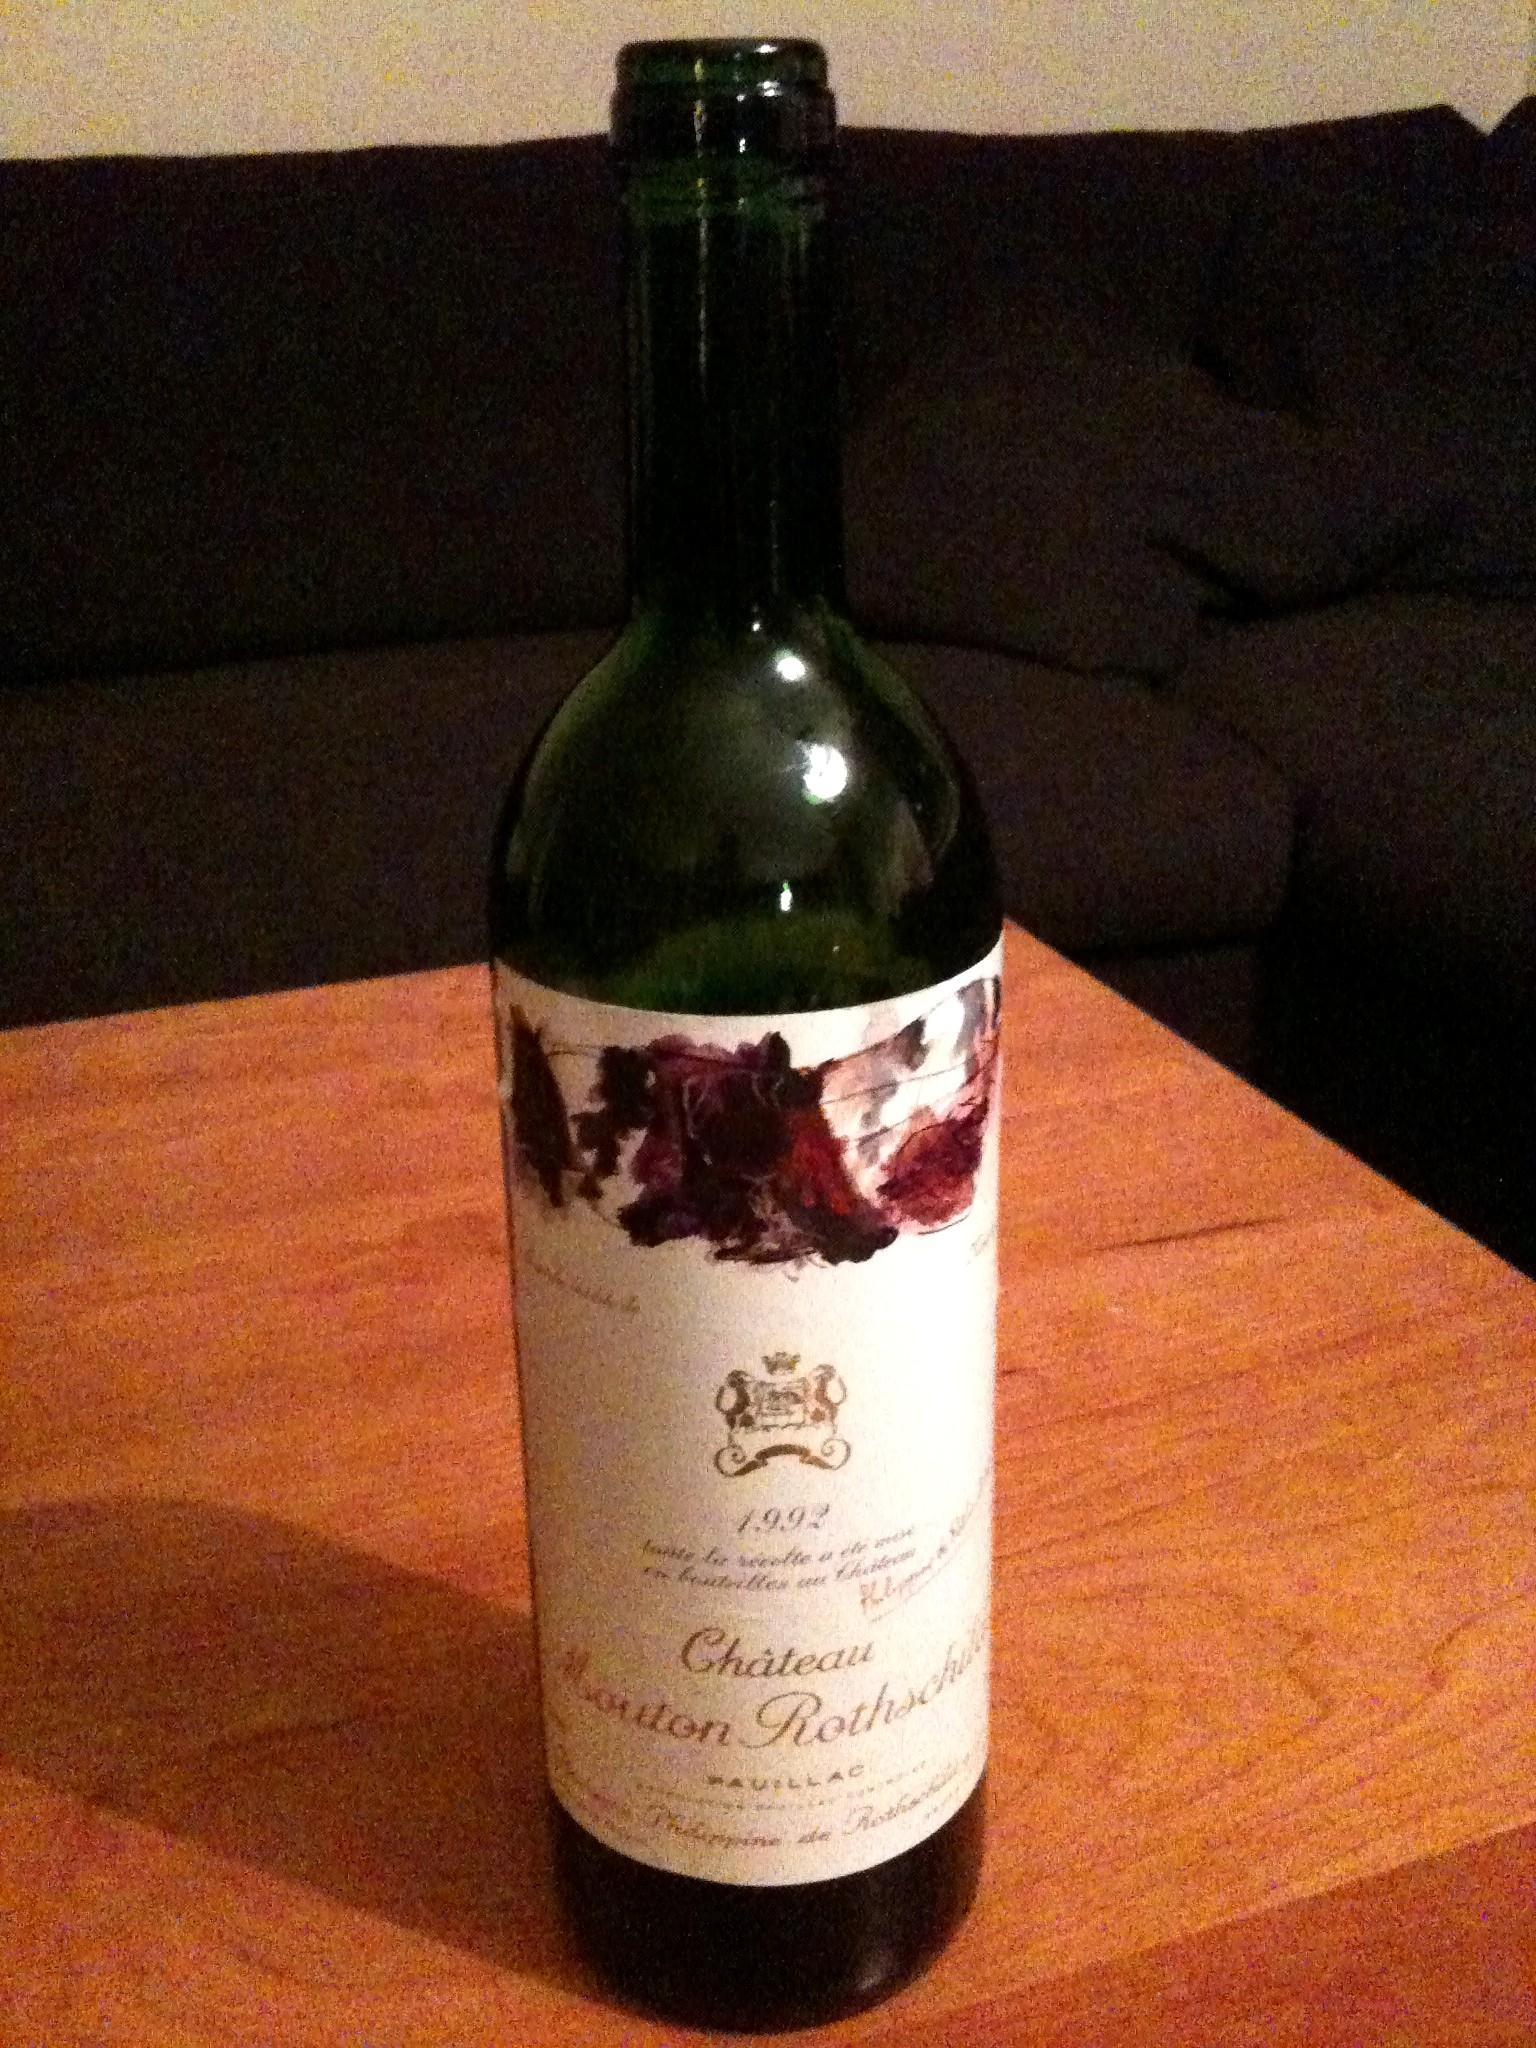 http://upload.wikimedia.org/wikipedia/commons/3/39/Chateau_Mouton_Rothschild%2C_1992%2C_Pauillac.jpg